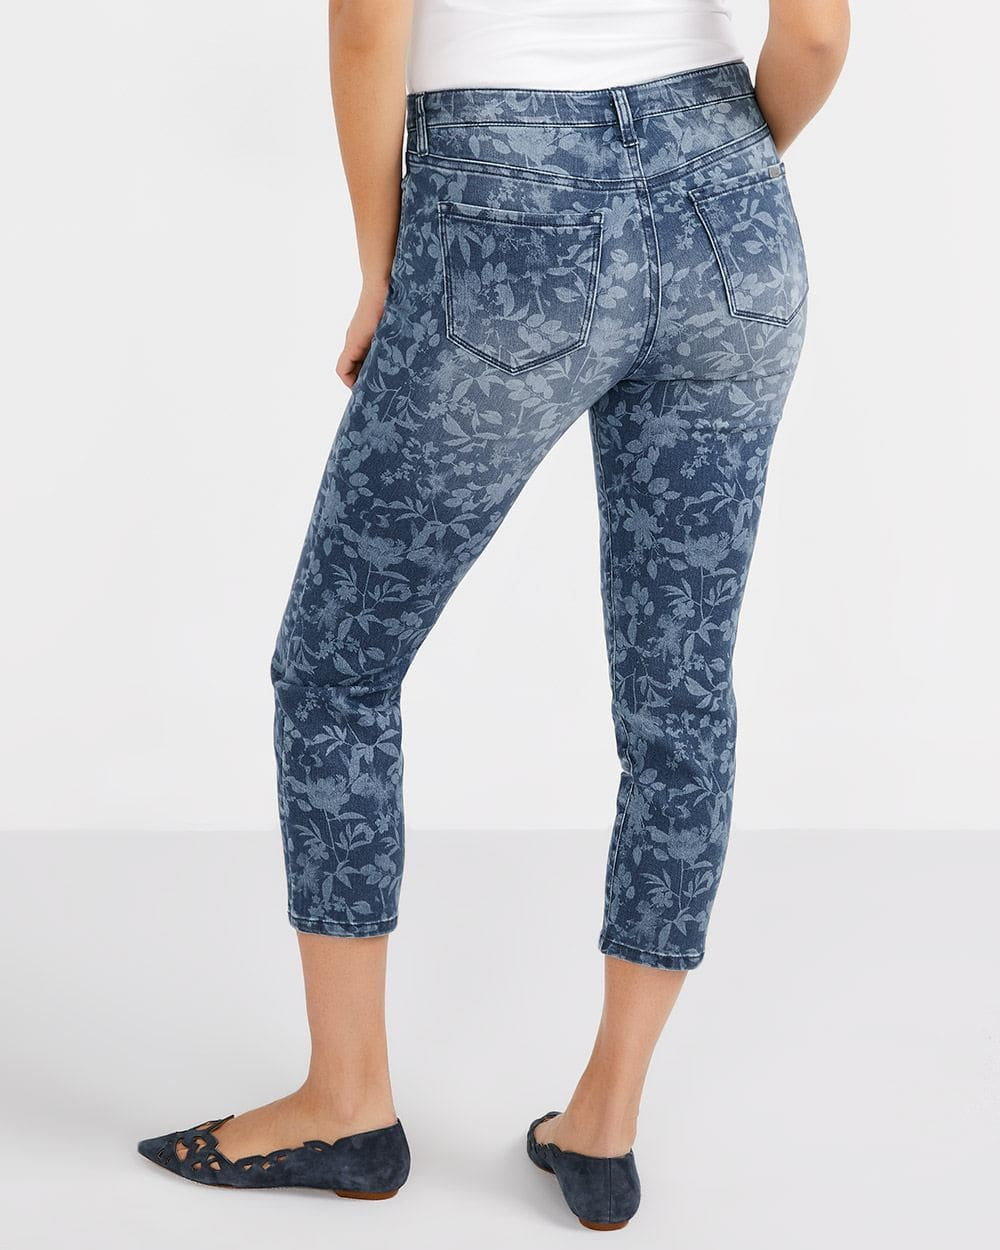 The Signature Soft Laser Print Cropped Jeans